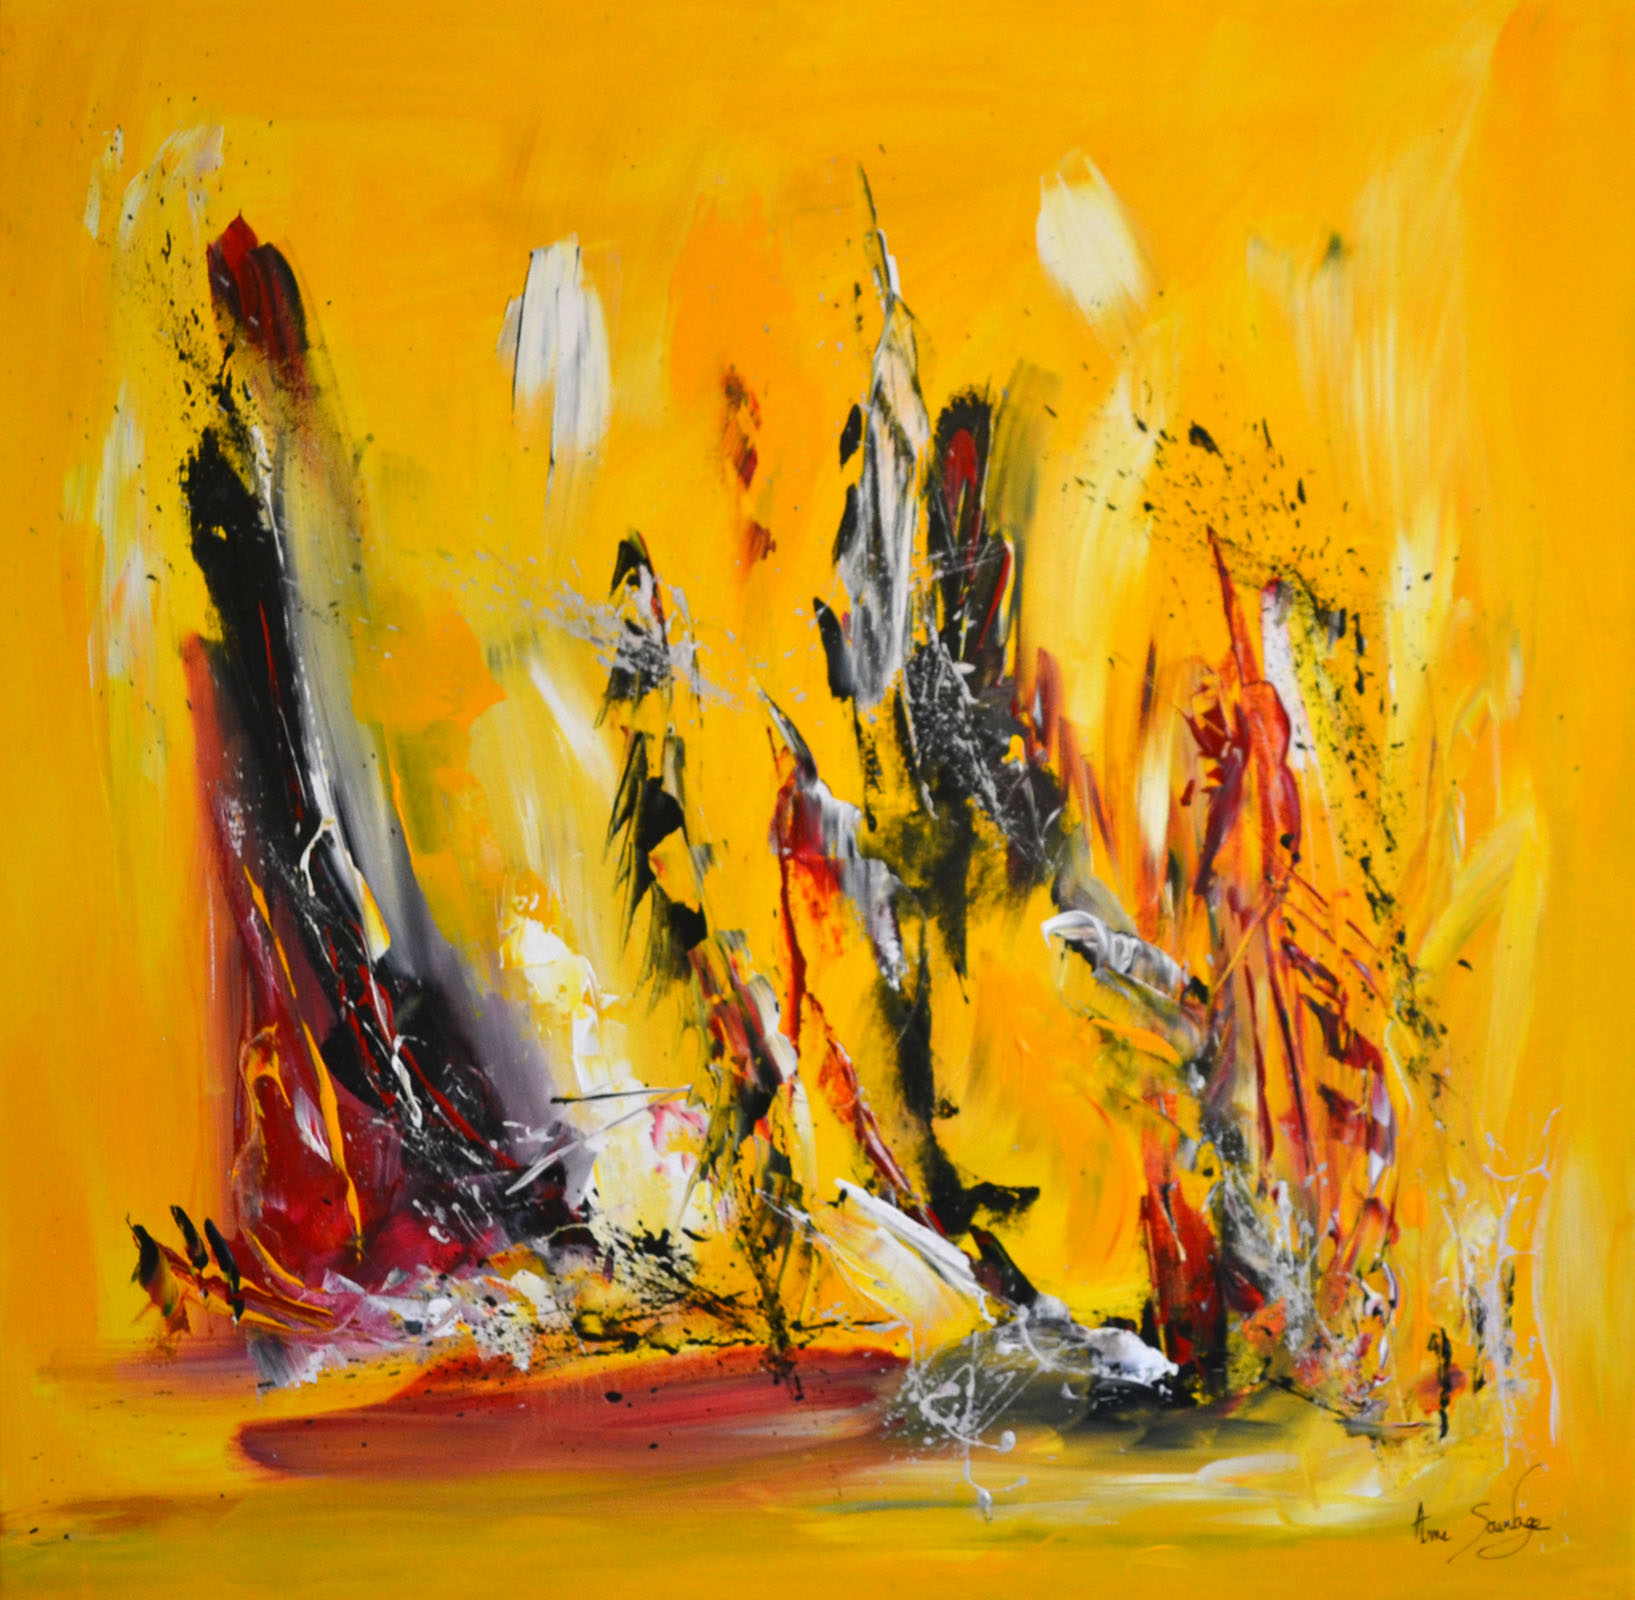 Tableau abstrait contemporain jaune noir rouge grand format for Tableau grand format abstrait